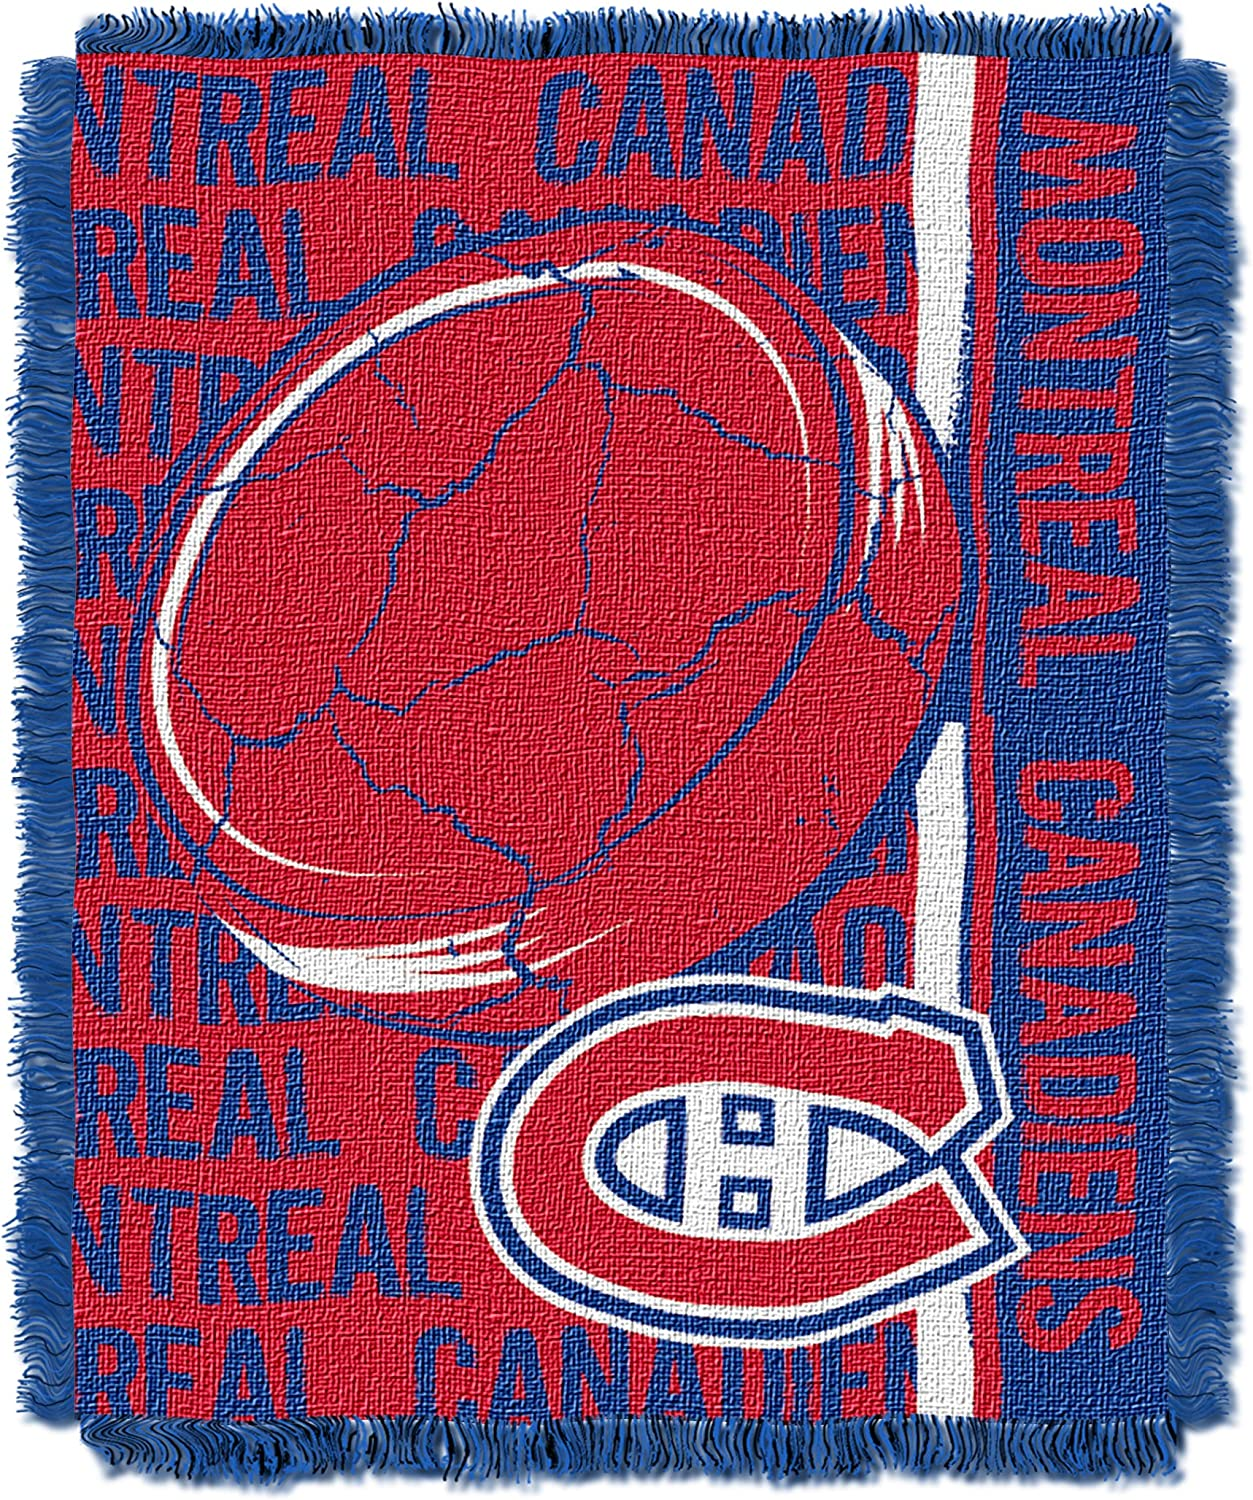 Officially Licensed NHL Double Play Jacquard Throw Blanket 48 x 60